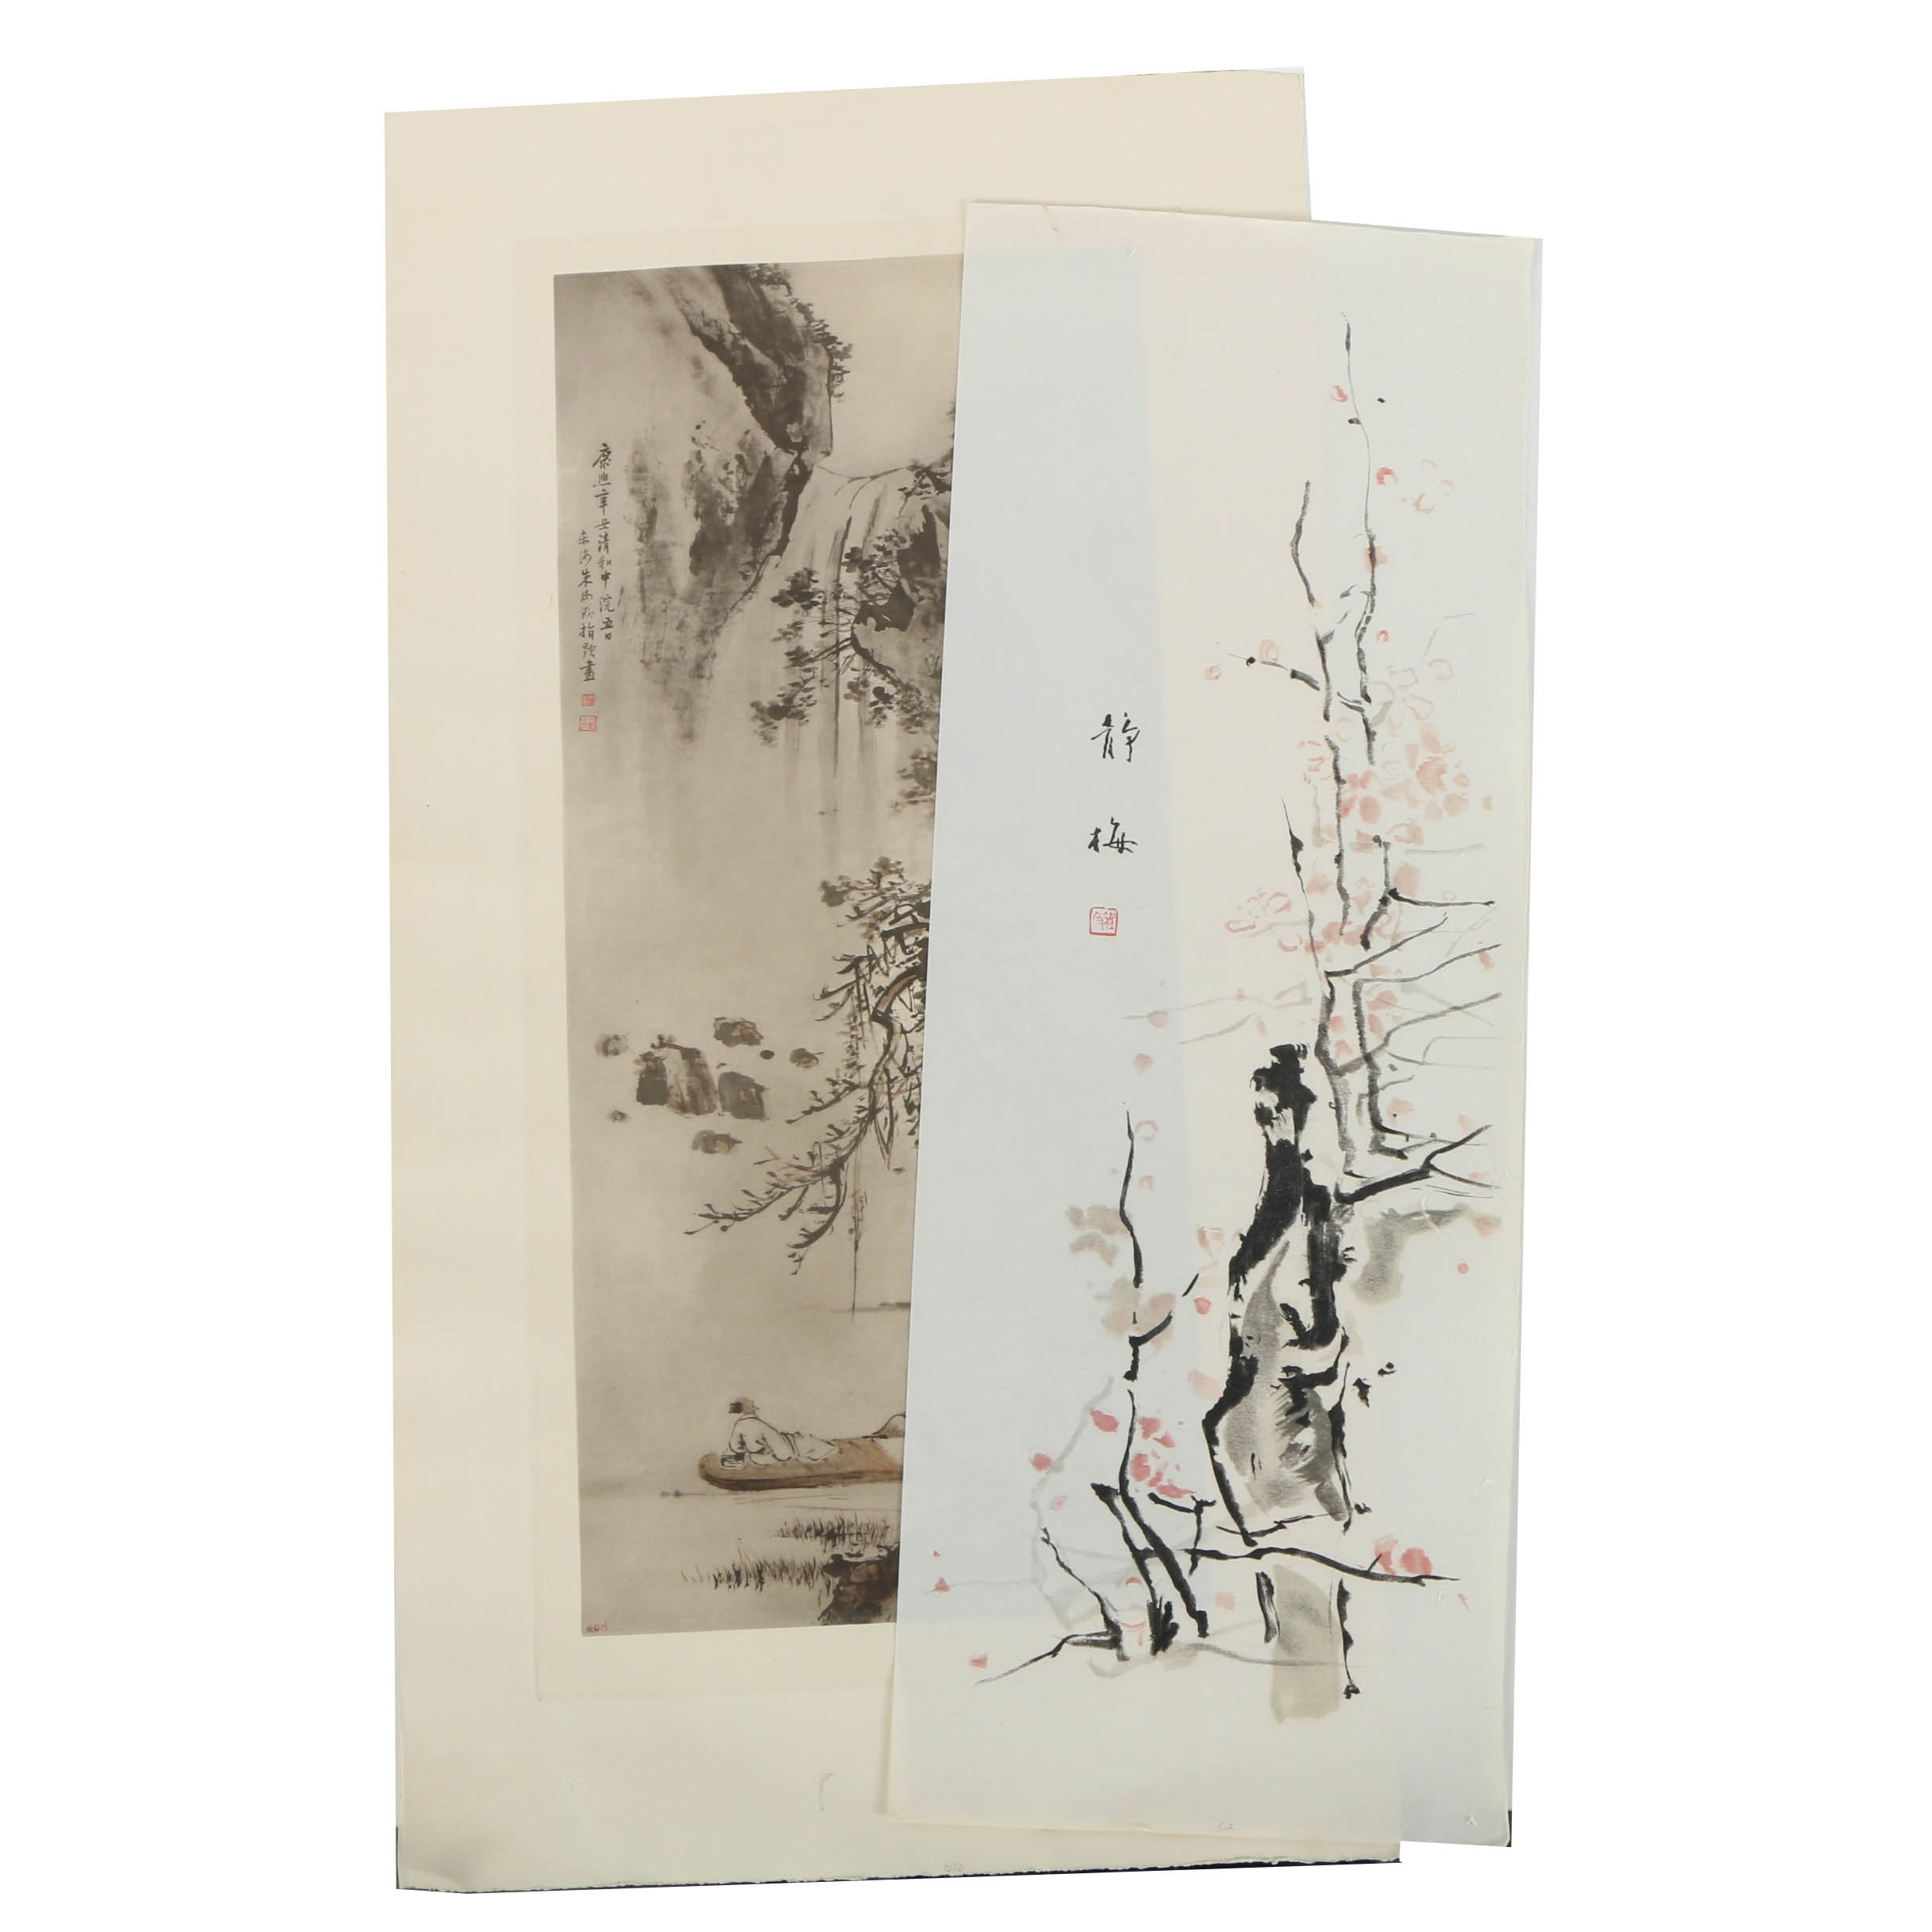 Pair of Woodblock and Lithograph Prints on Woven Paper of East Asian Scenes